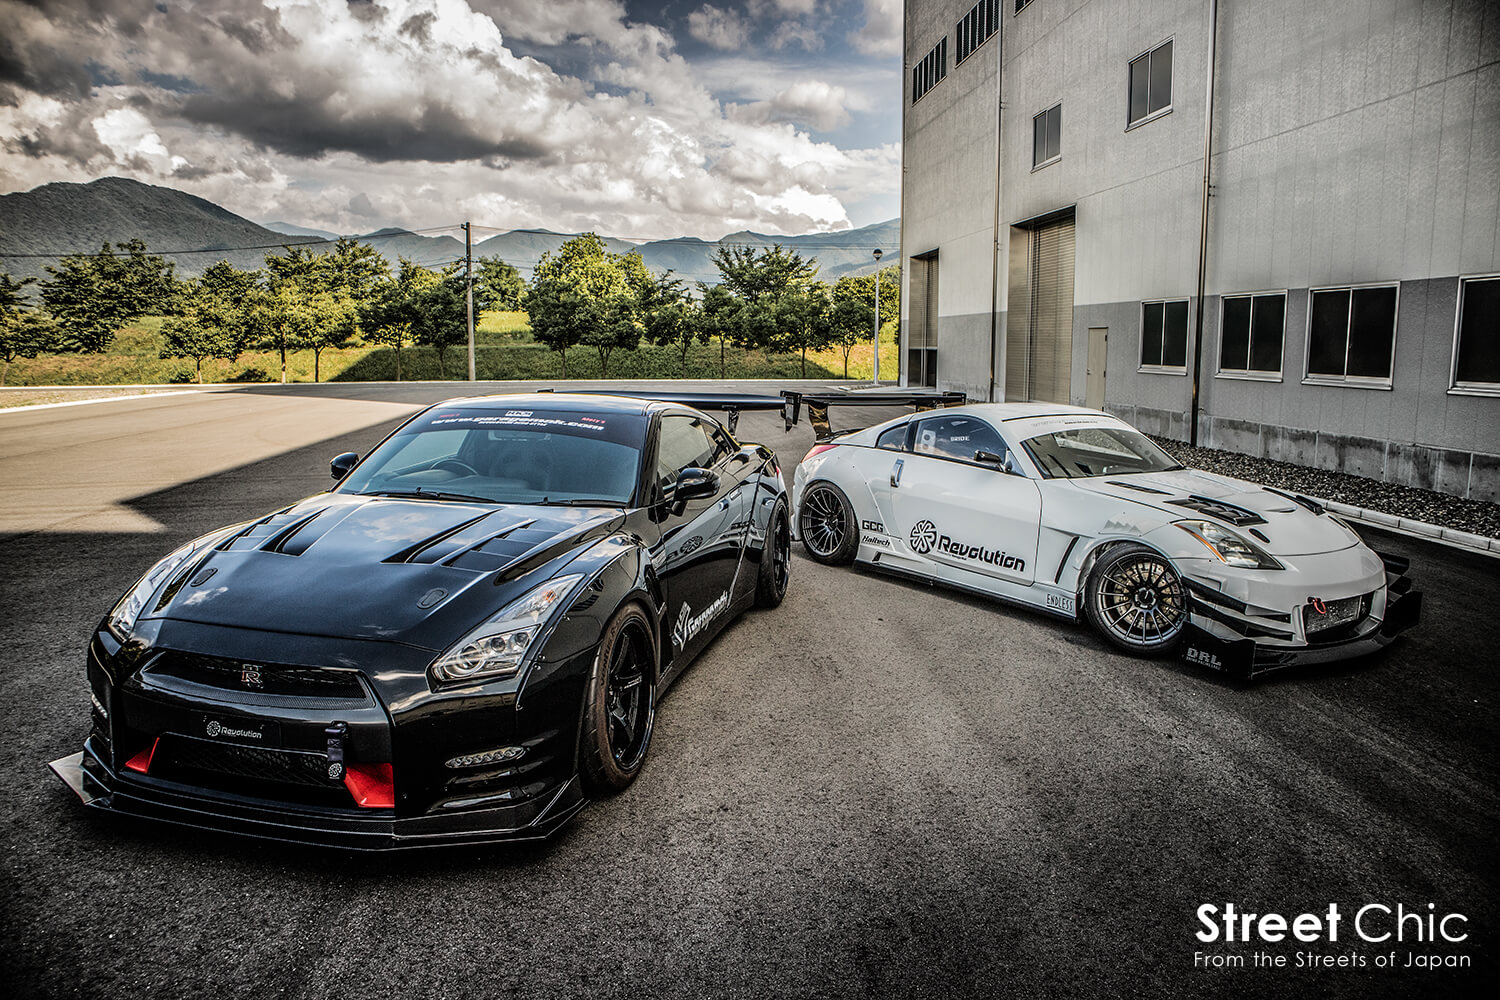 Garagemak. Revolution R35Series&z33 / over fender JDM